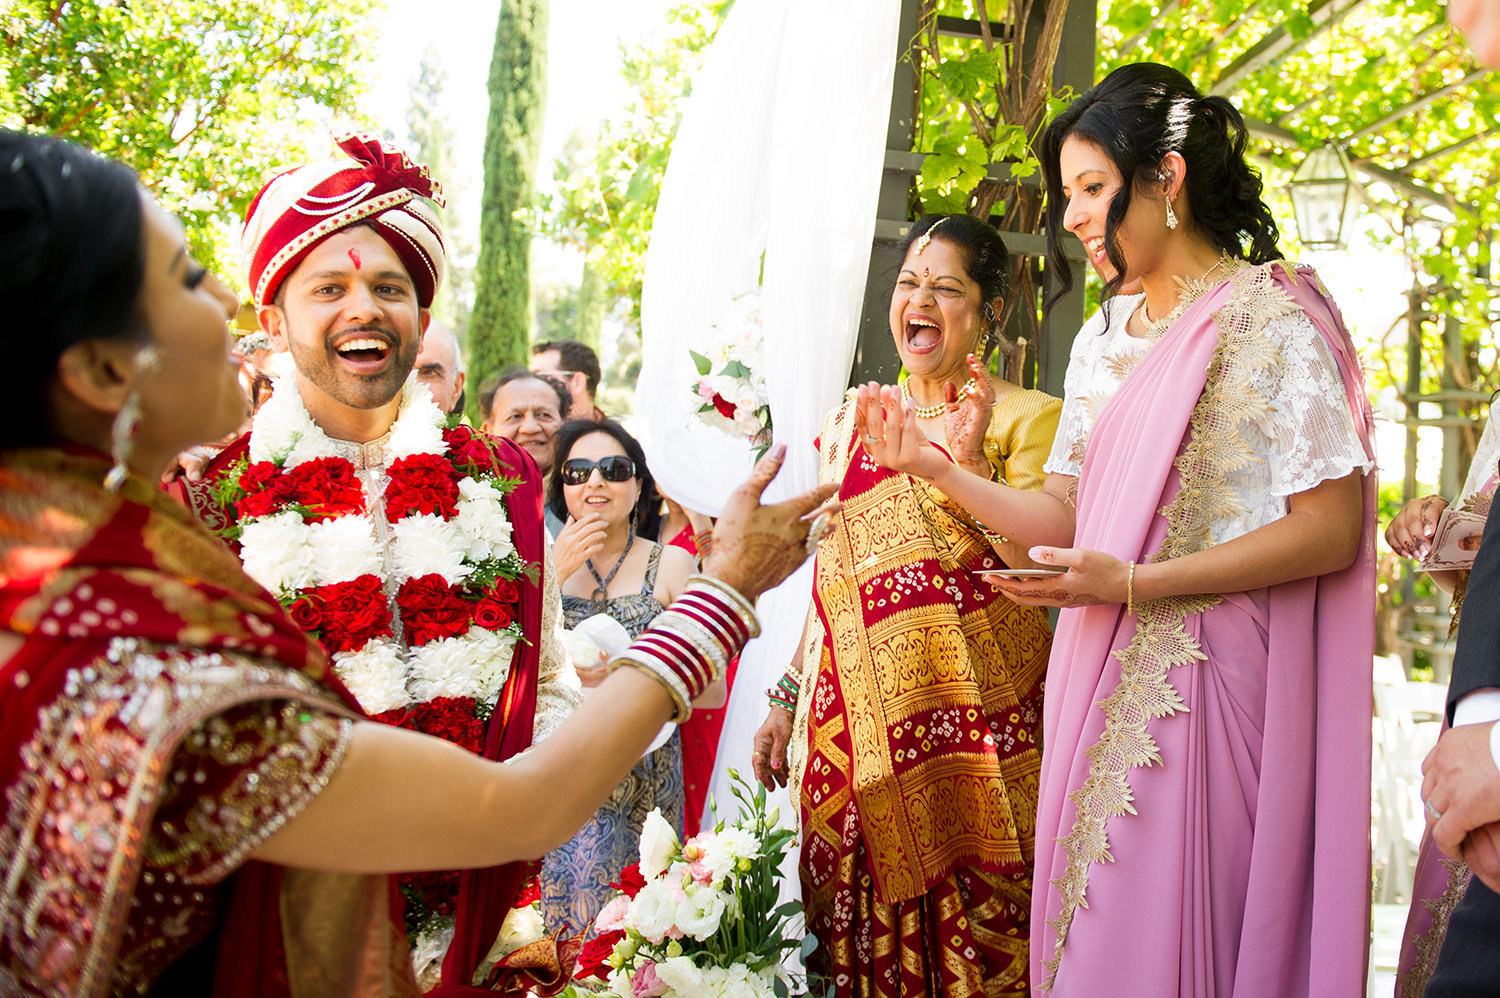 The groom bargains with bridesmaids to get his shoes back after a traditional hindu wedding ceremony